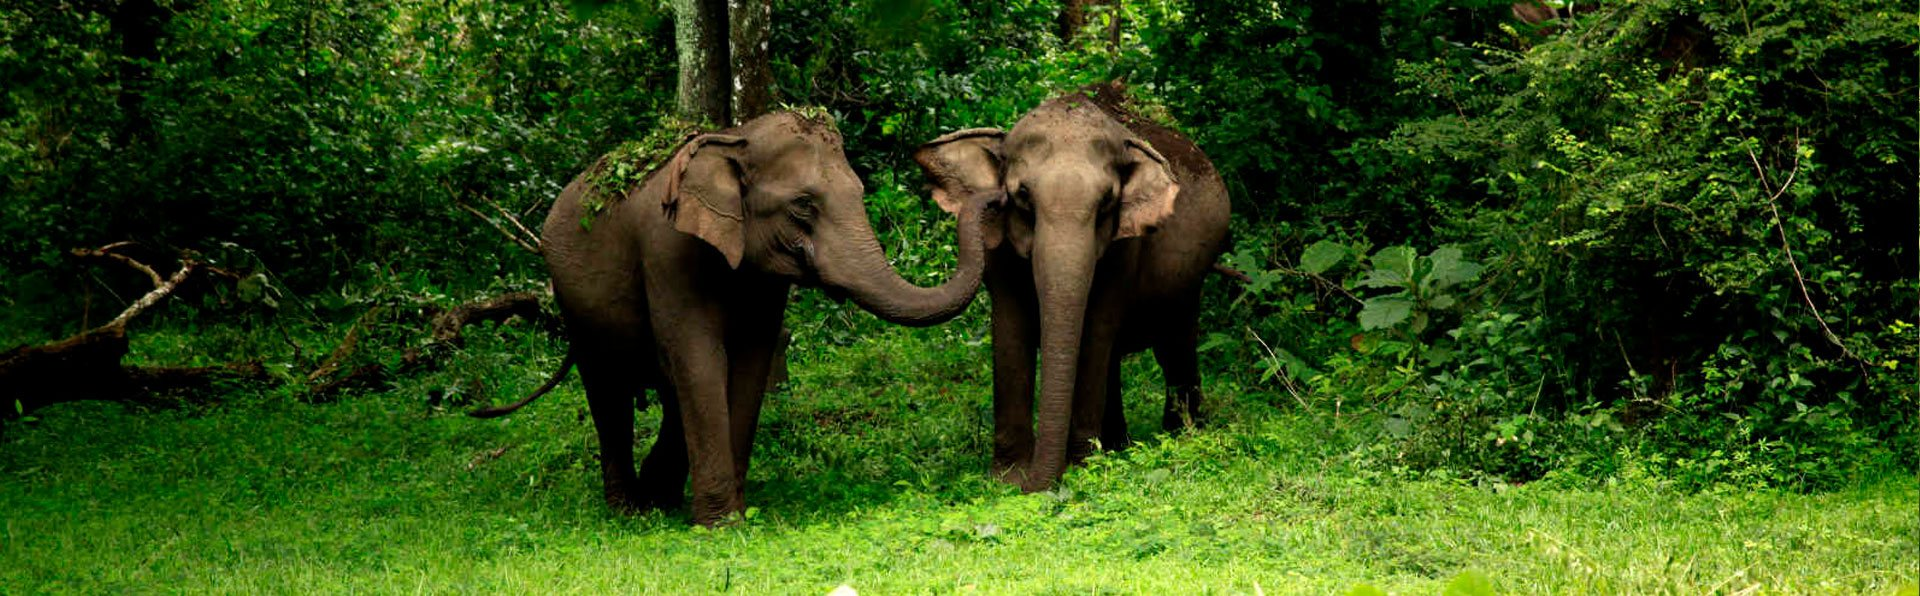 Wayanad Elephants